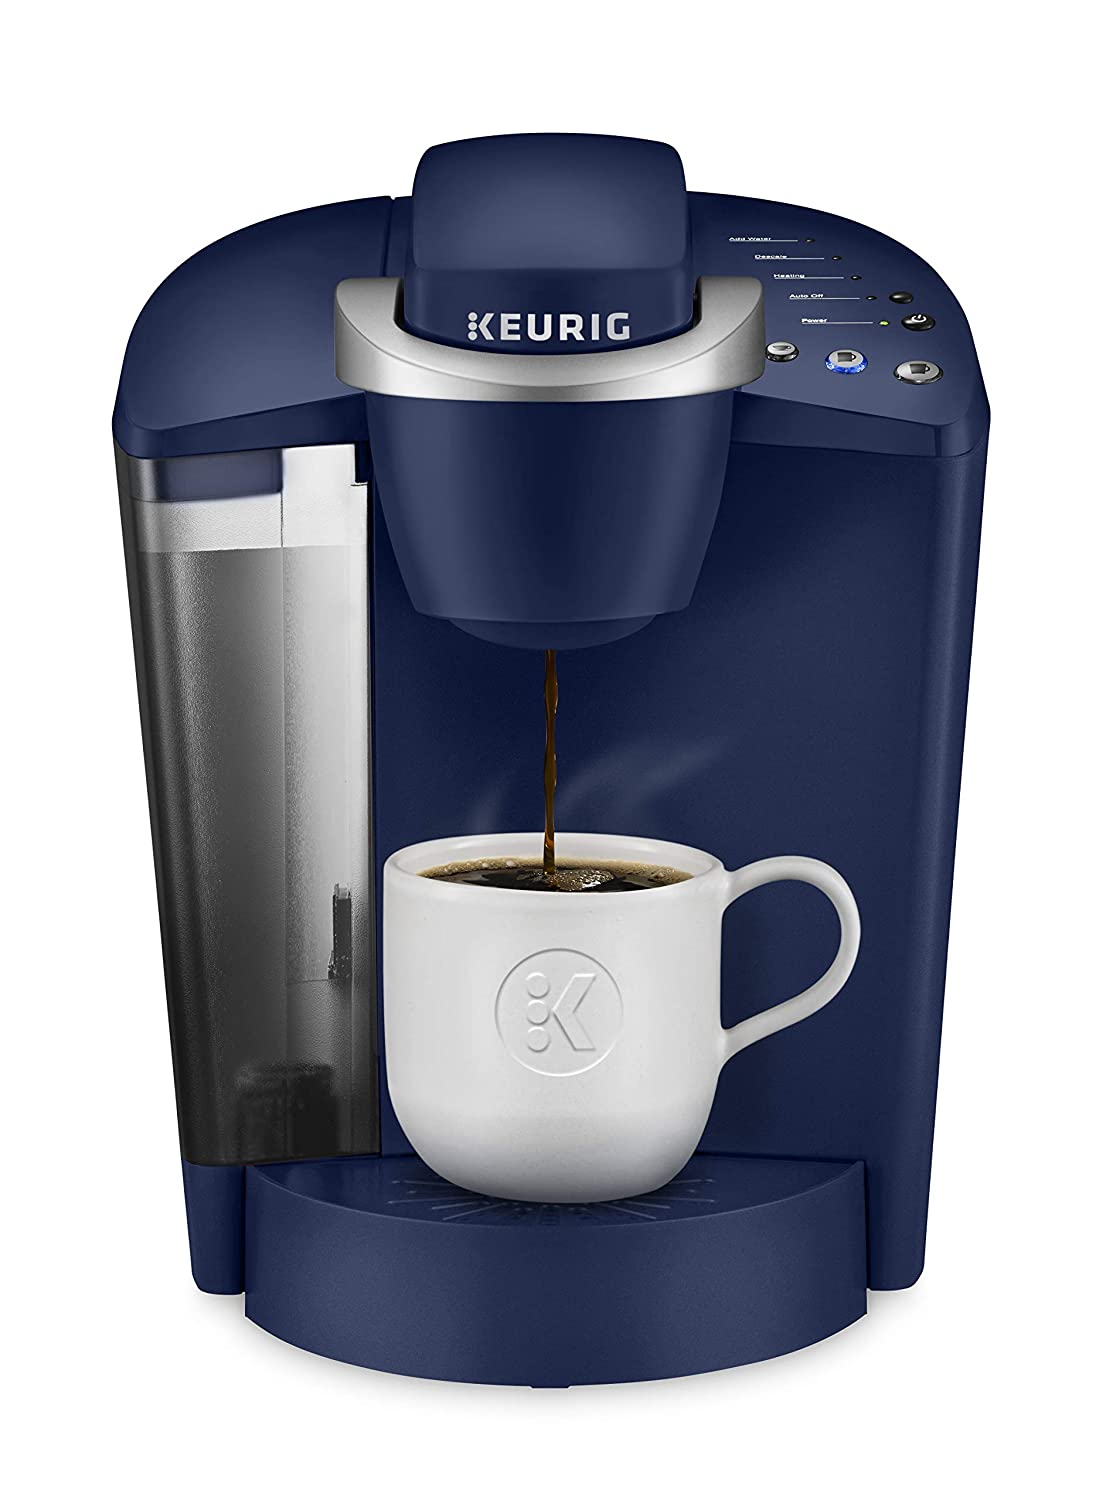 Keurig K-Classic Coffee Maker, K-Cup Pod, Single Serve, Programmable, Patriot Blue